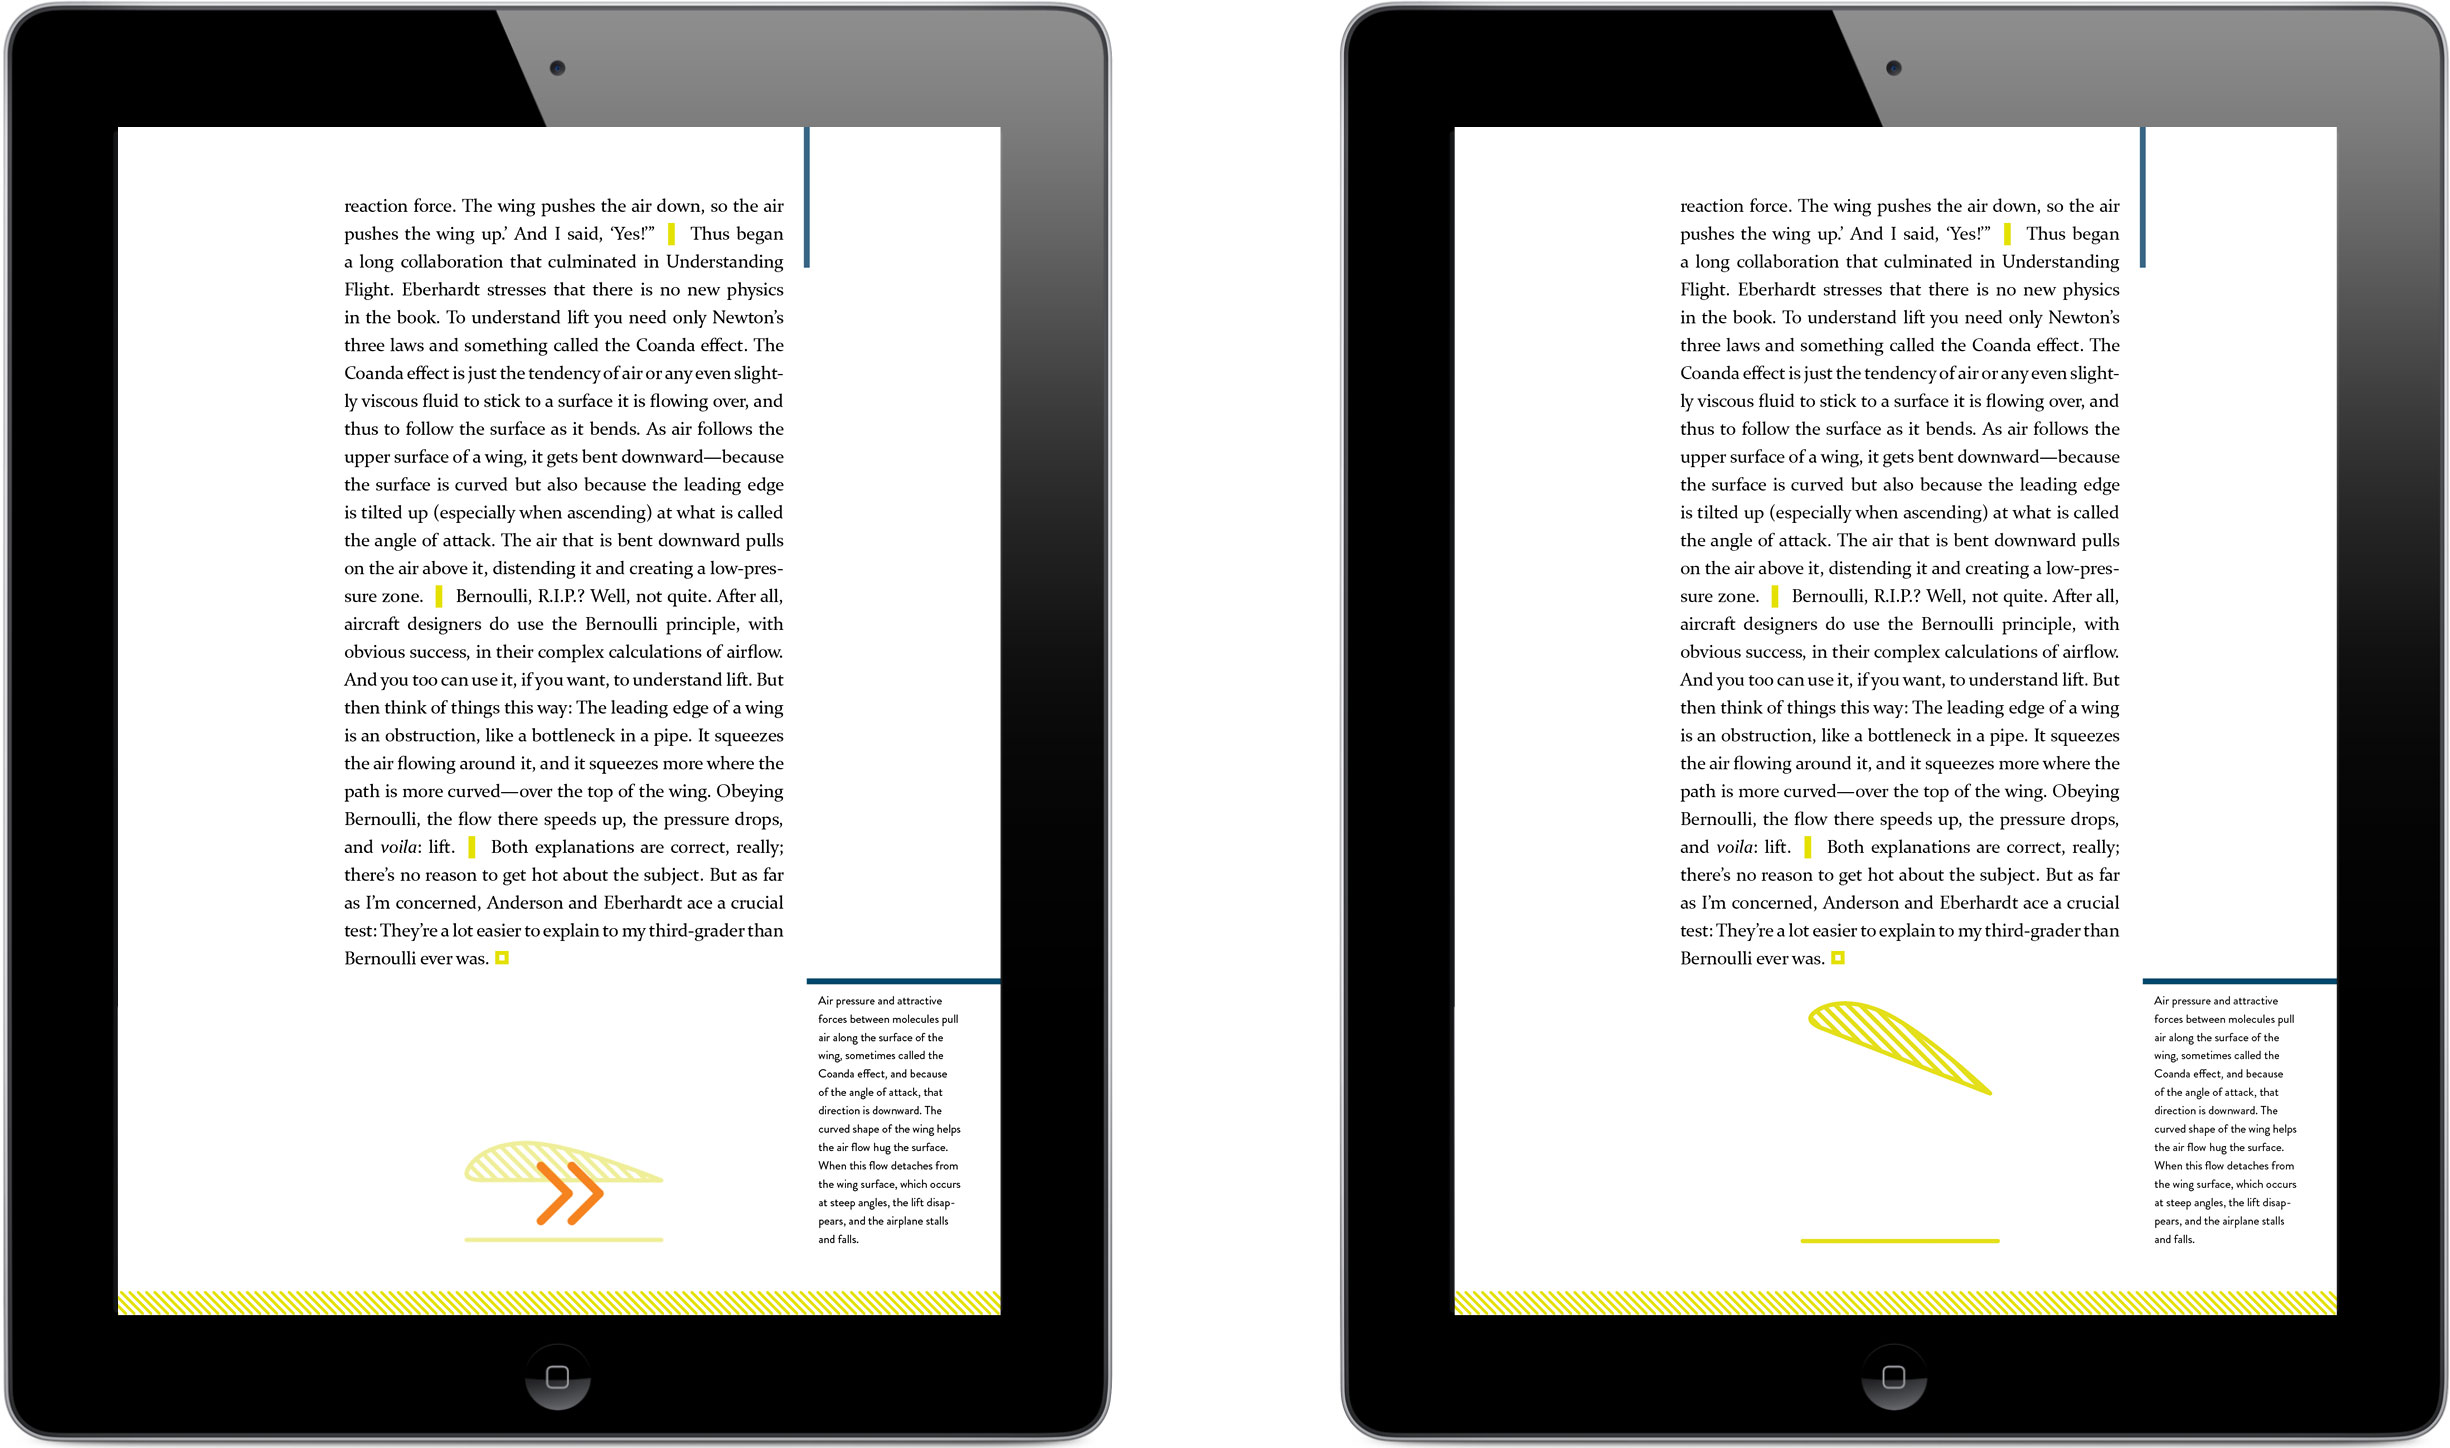 Two still screens side-by-side demonstrate the behavior of an animating wing illustration when swiped: it lifts and then lowers.